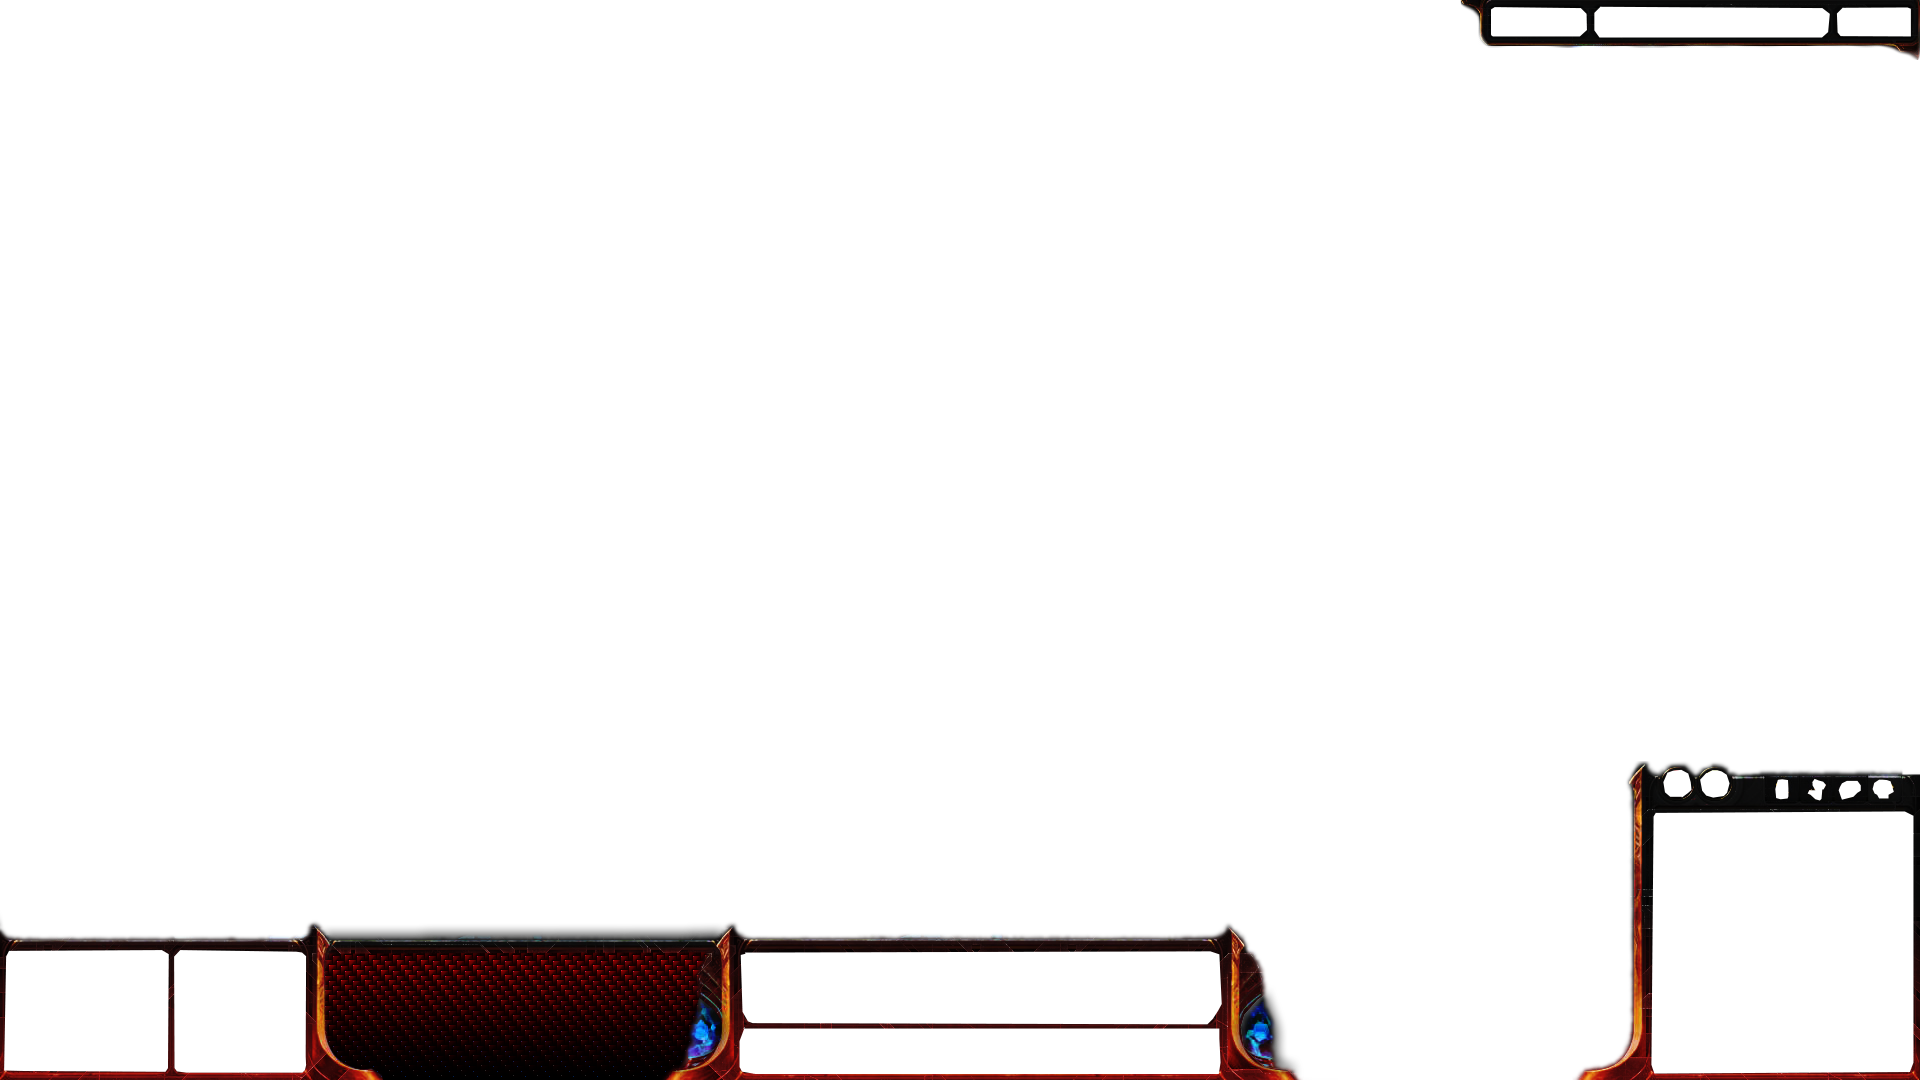 Red Passion - Free LoL Stream Overlay by Syssx on DeviantArt